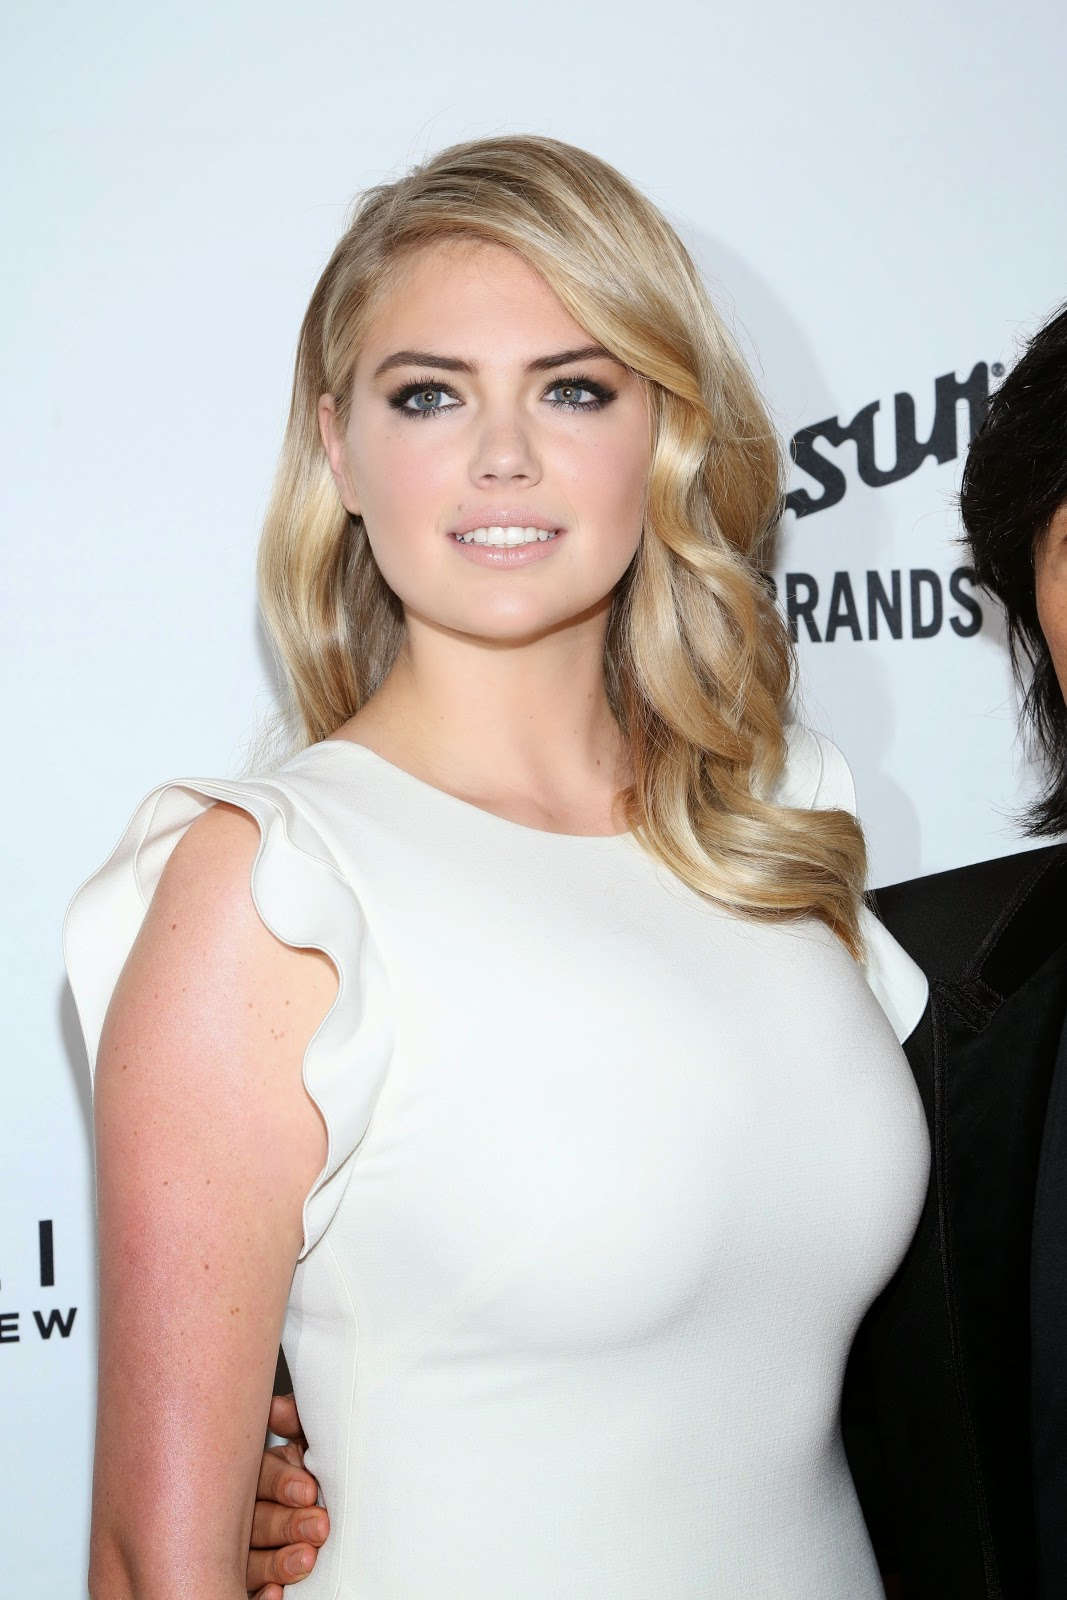 In HD Photos - Kate Upton attends Annual Fashion Media Awards